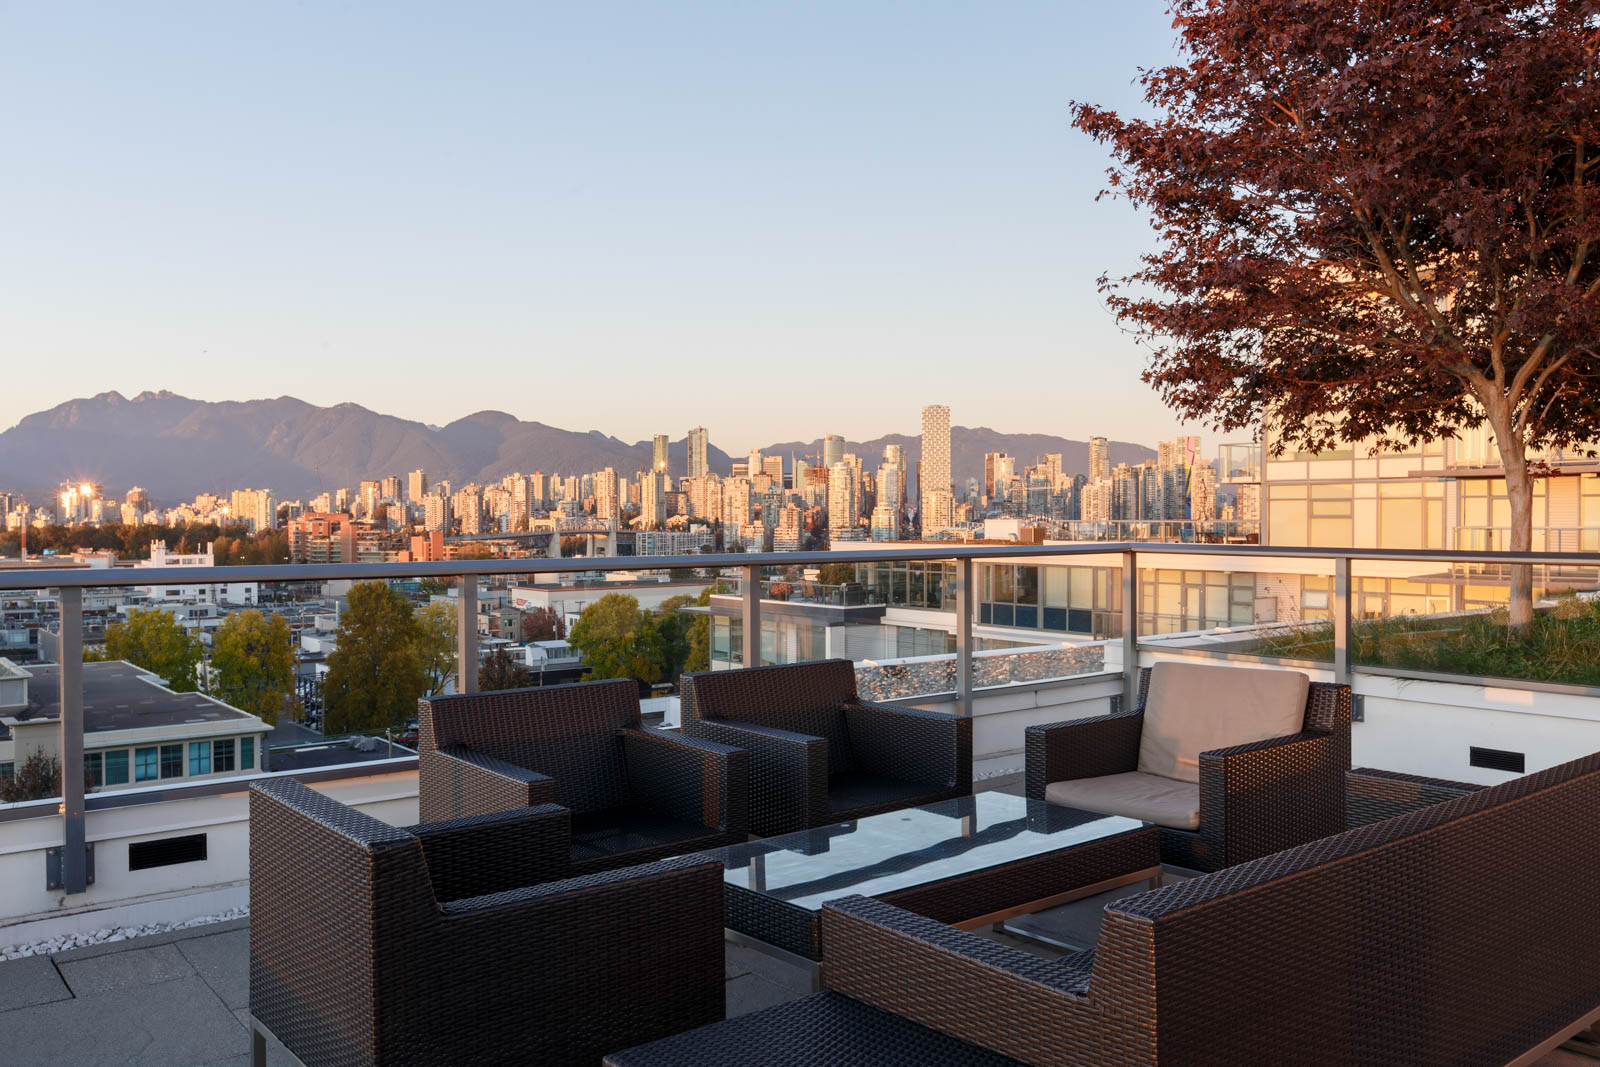 scenic view of vancouver on the kits360 rooftop patio with woven furniture in vancouver on West 7th Avenue managed by birds nest properties